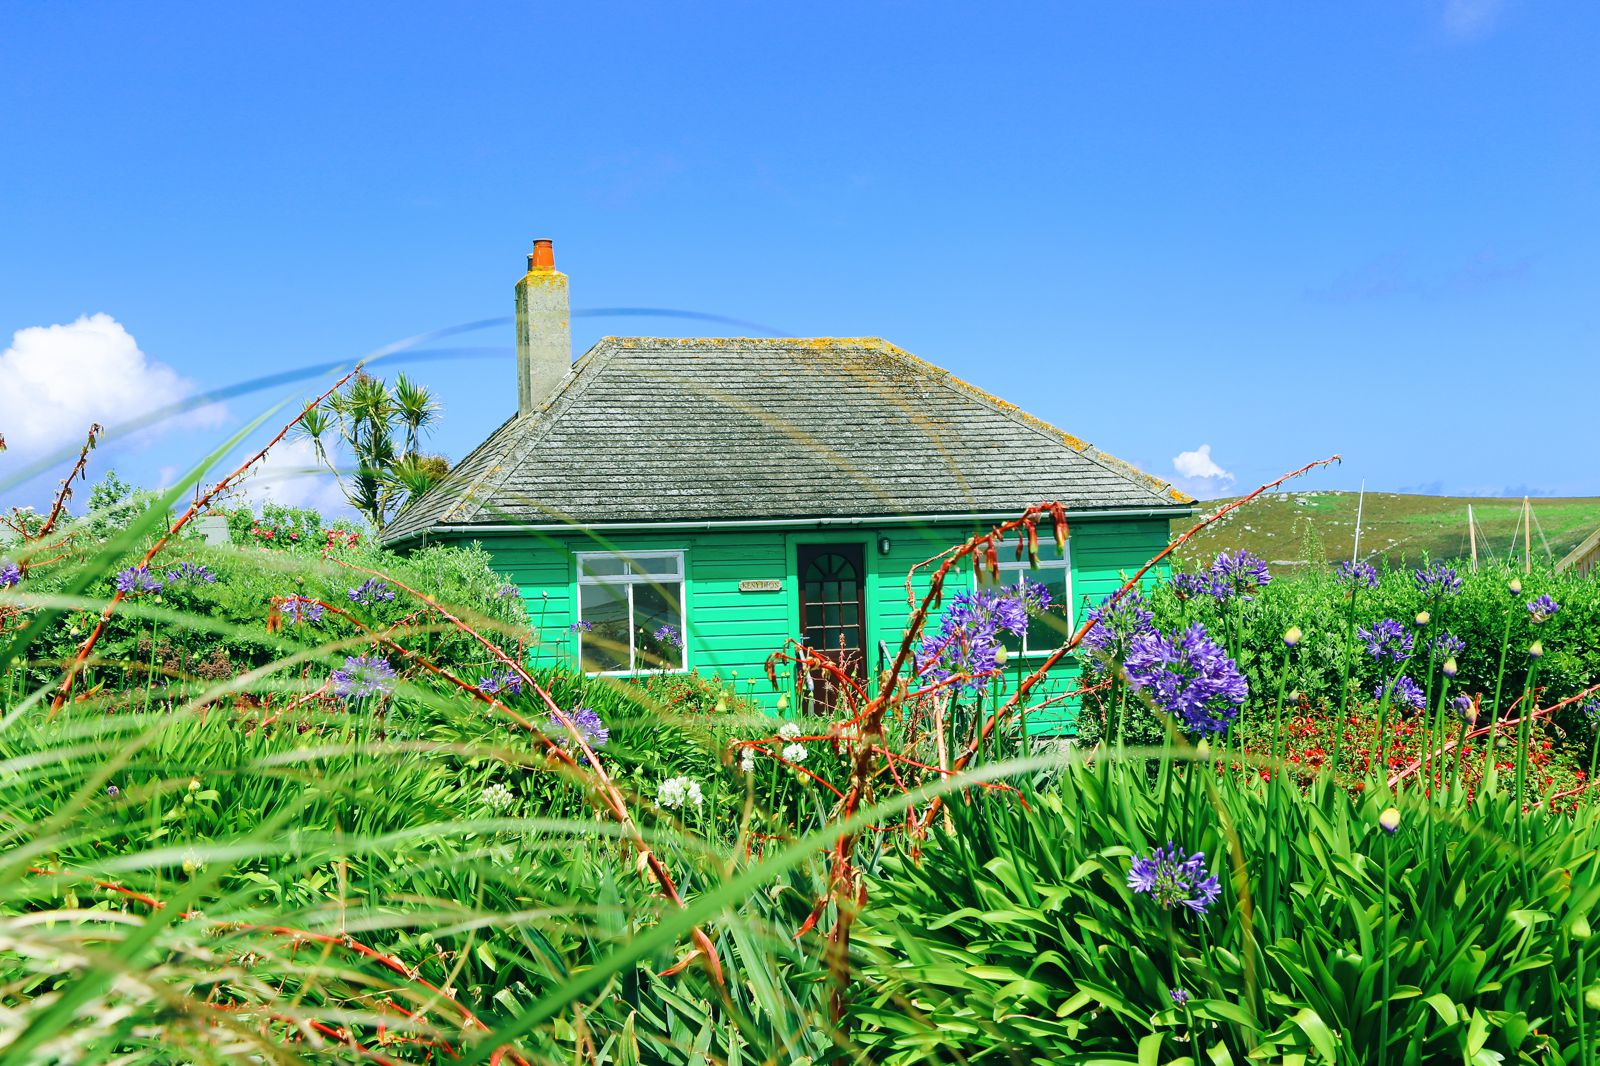 Kayaking in Bryher, Honesty Boxes and Tropical Island Hues... In Bryher Island, Isles of Scilly, UK (46)